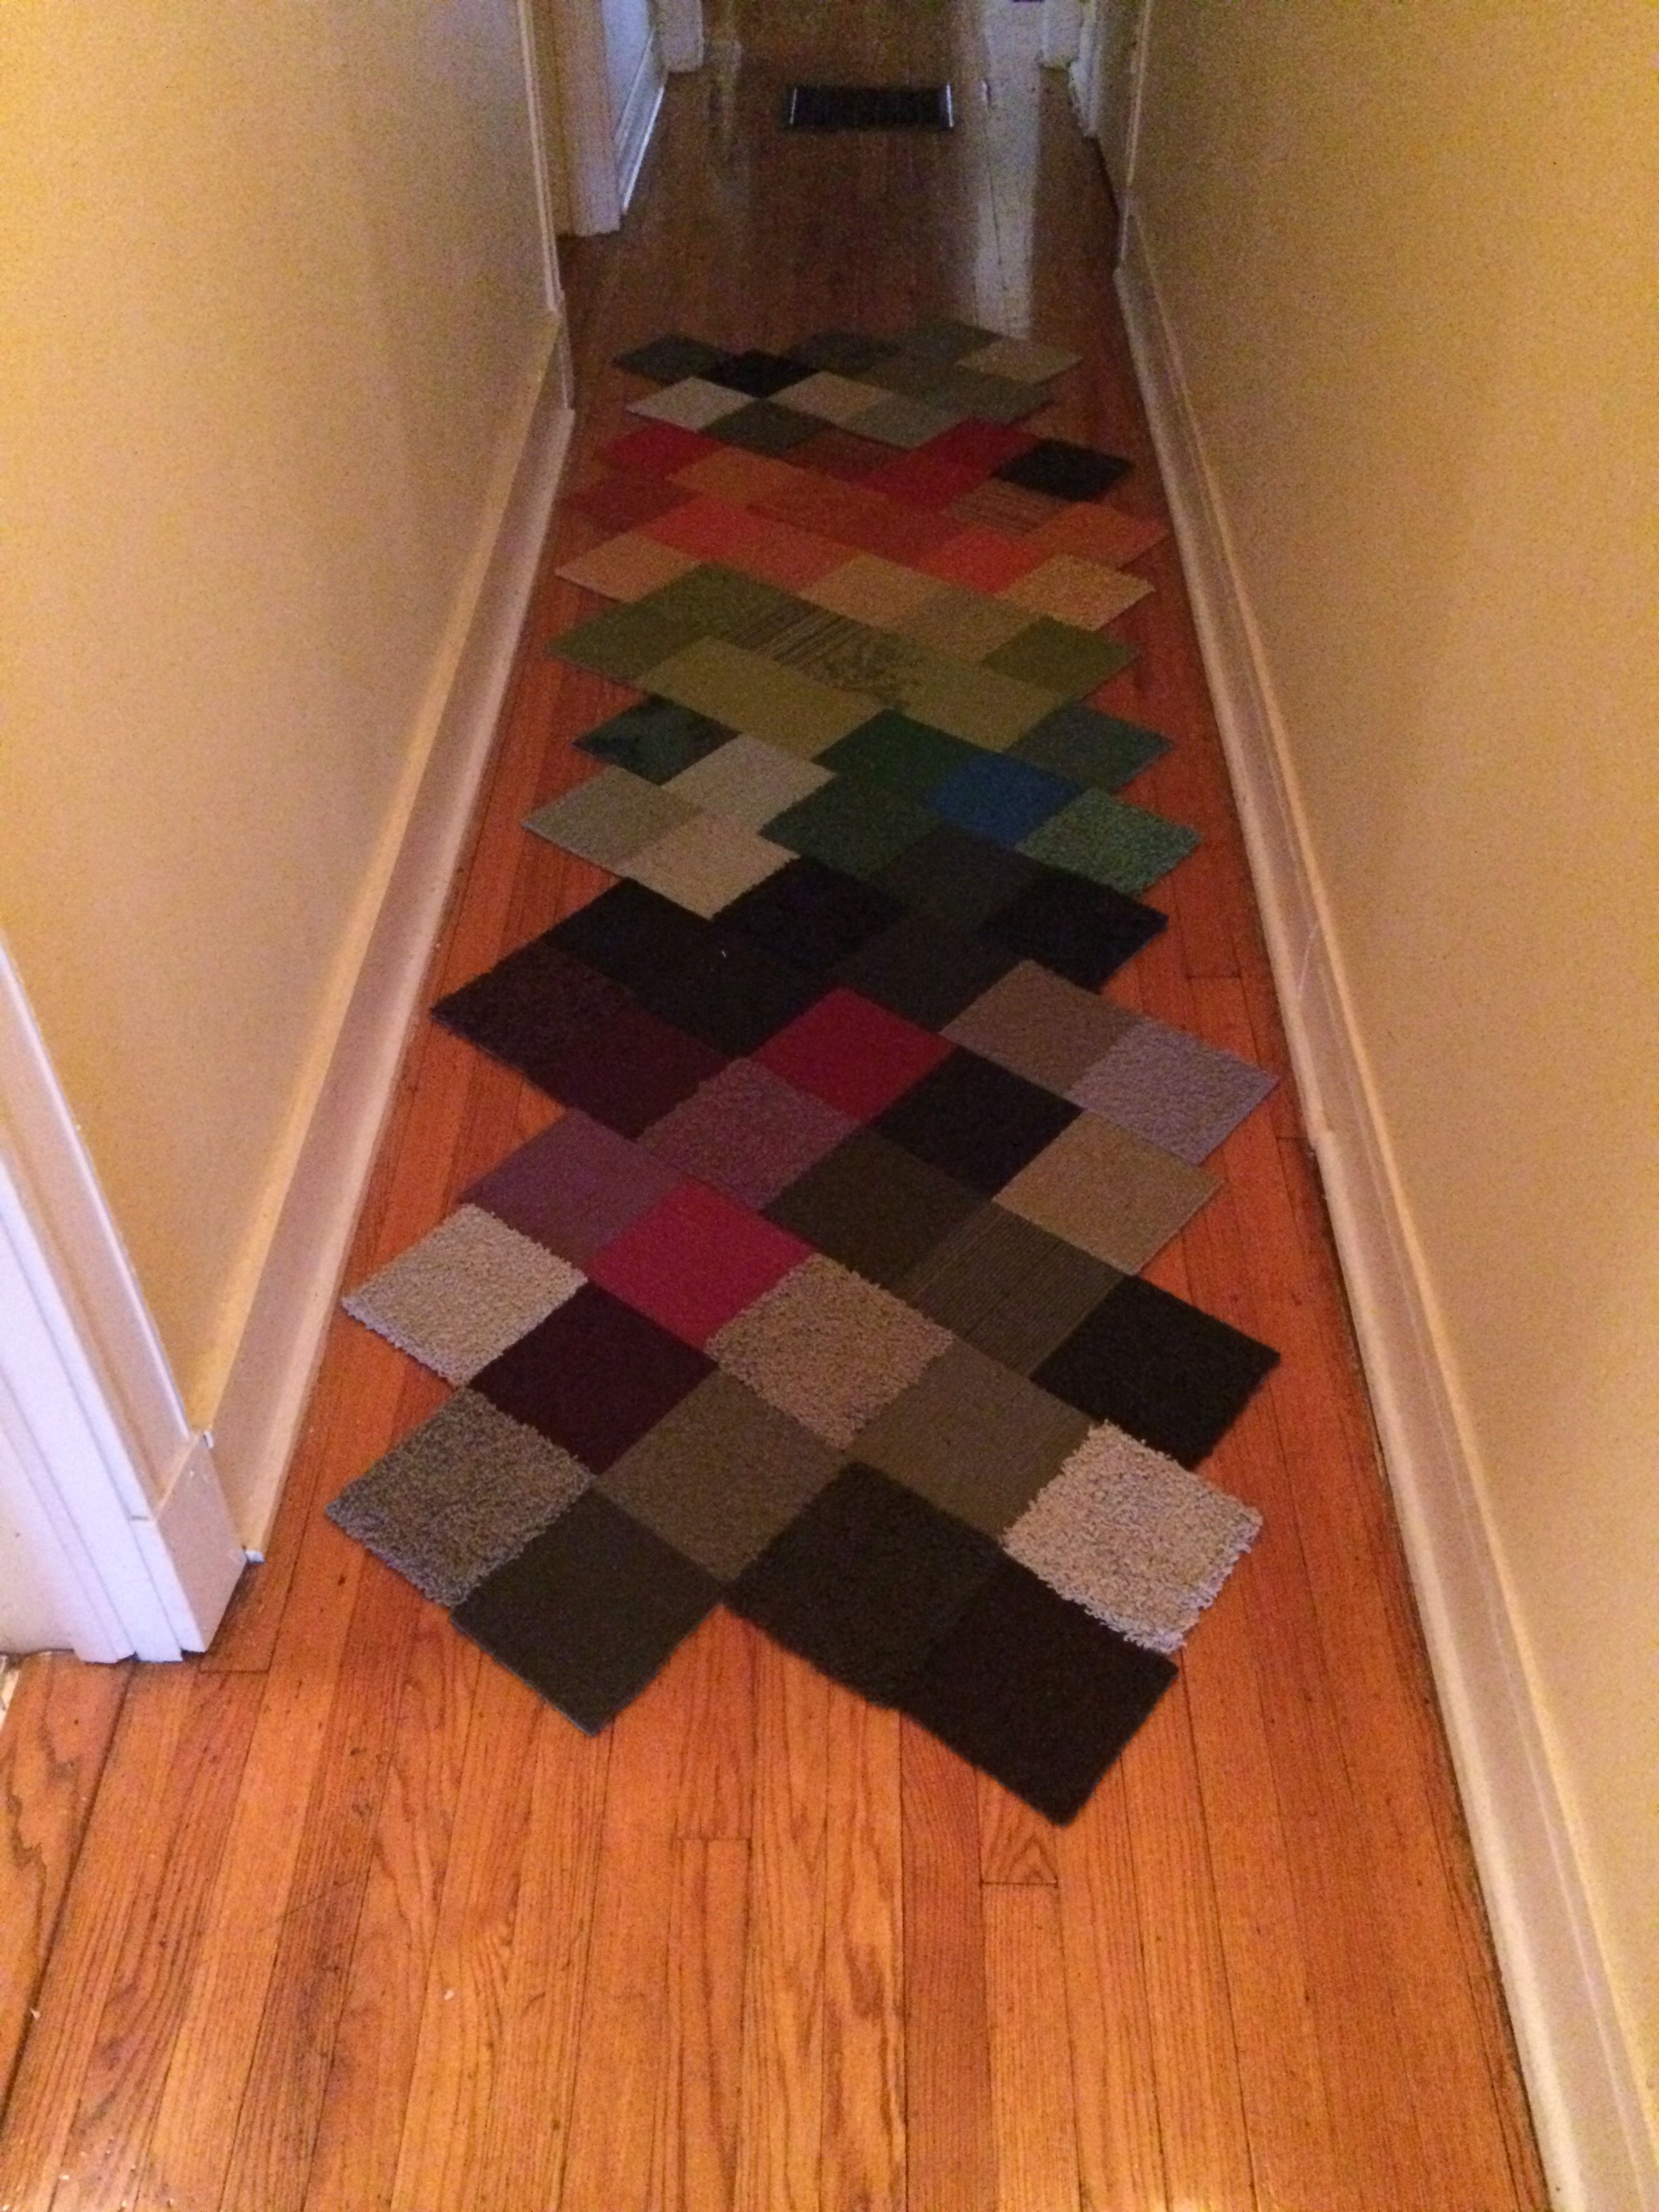 I used my collection of FLOR carpet samples to create a runner for